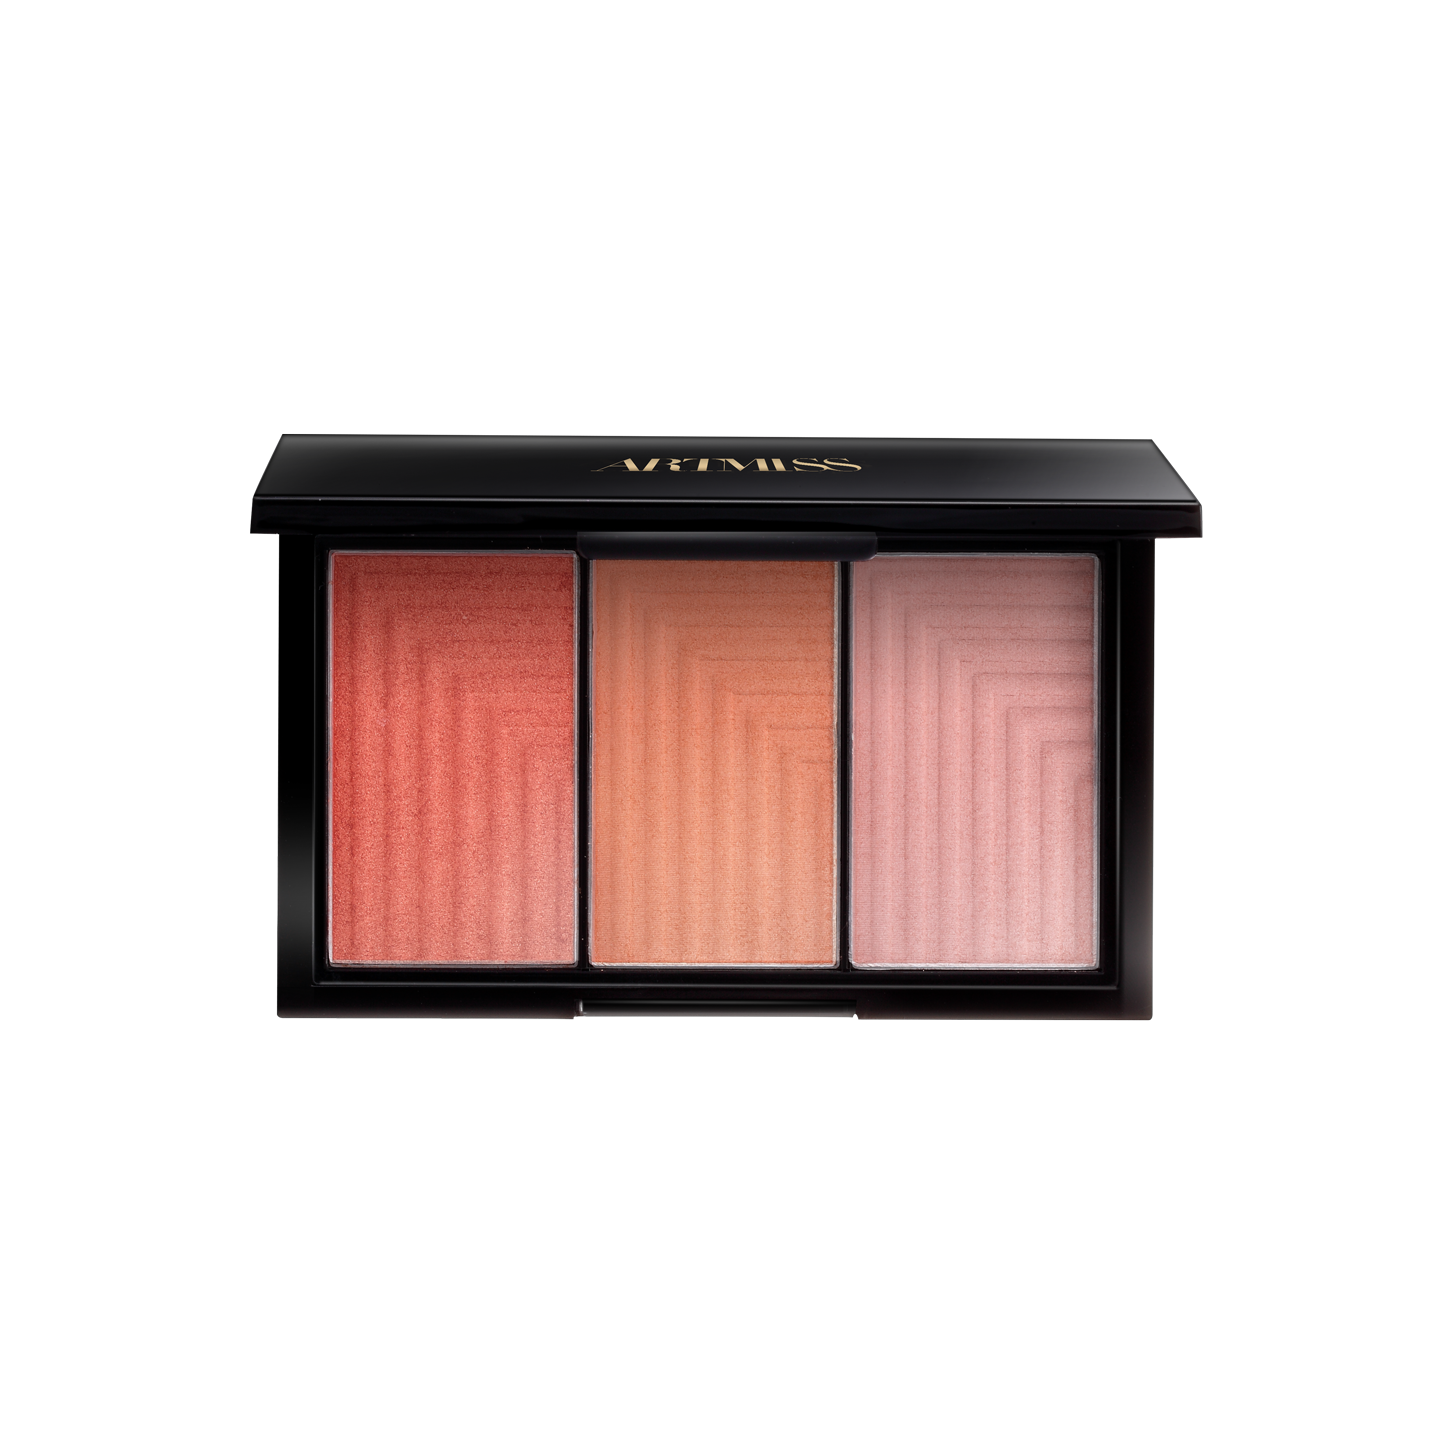 SMOKY GRADED BLUSH PALETTE